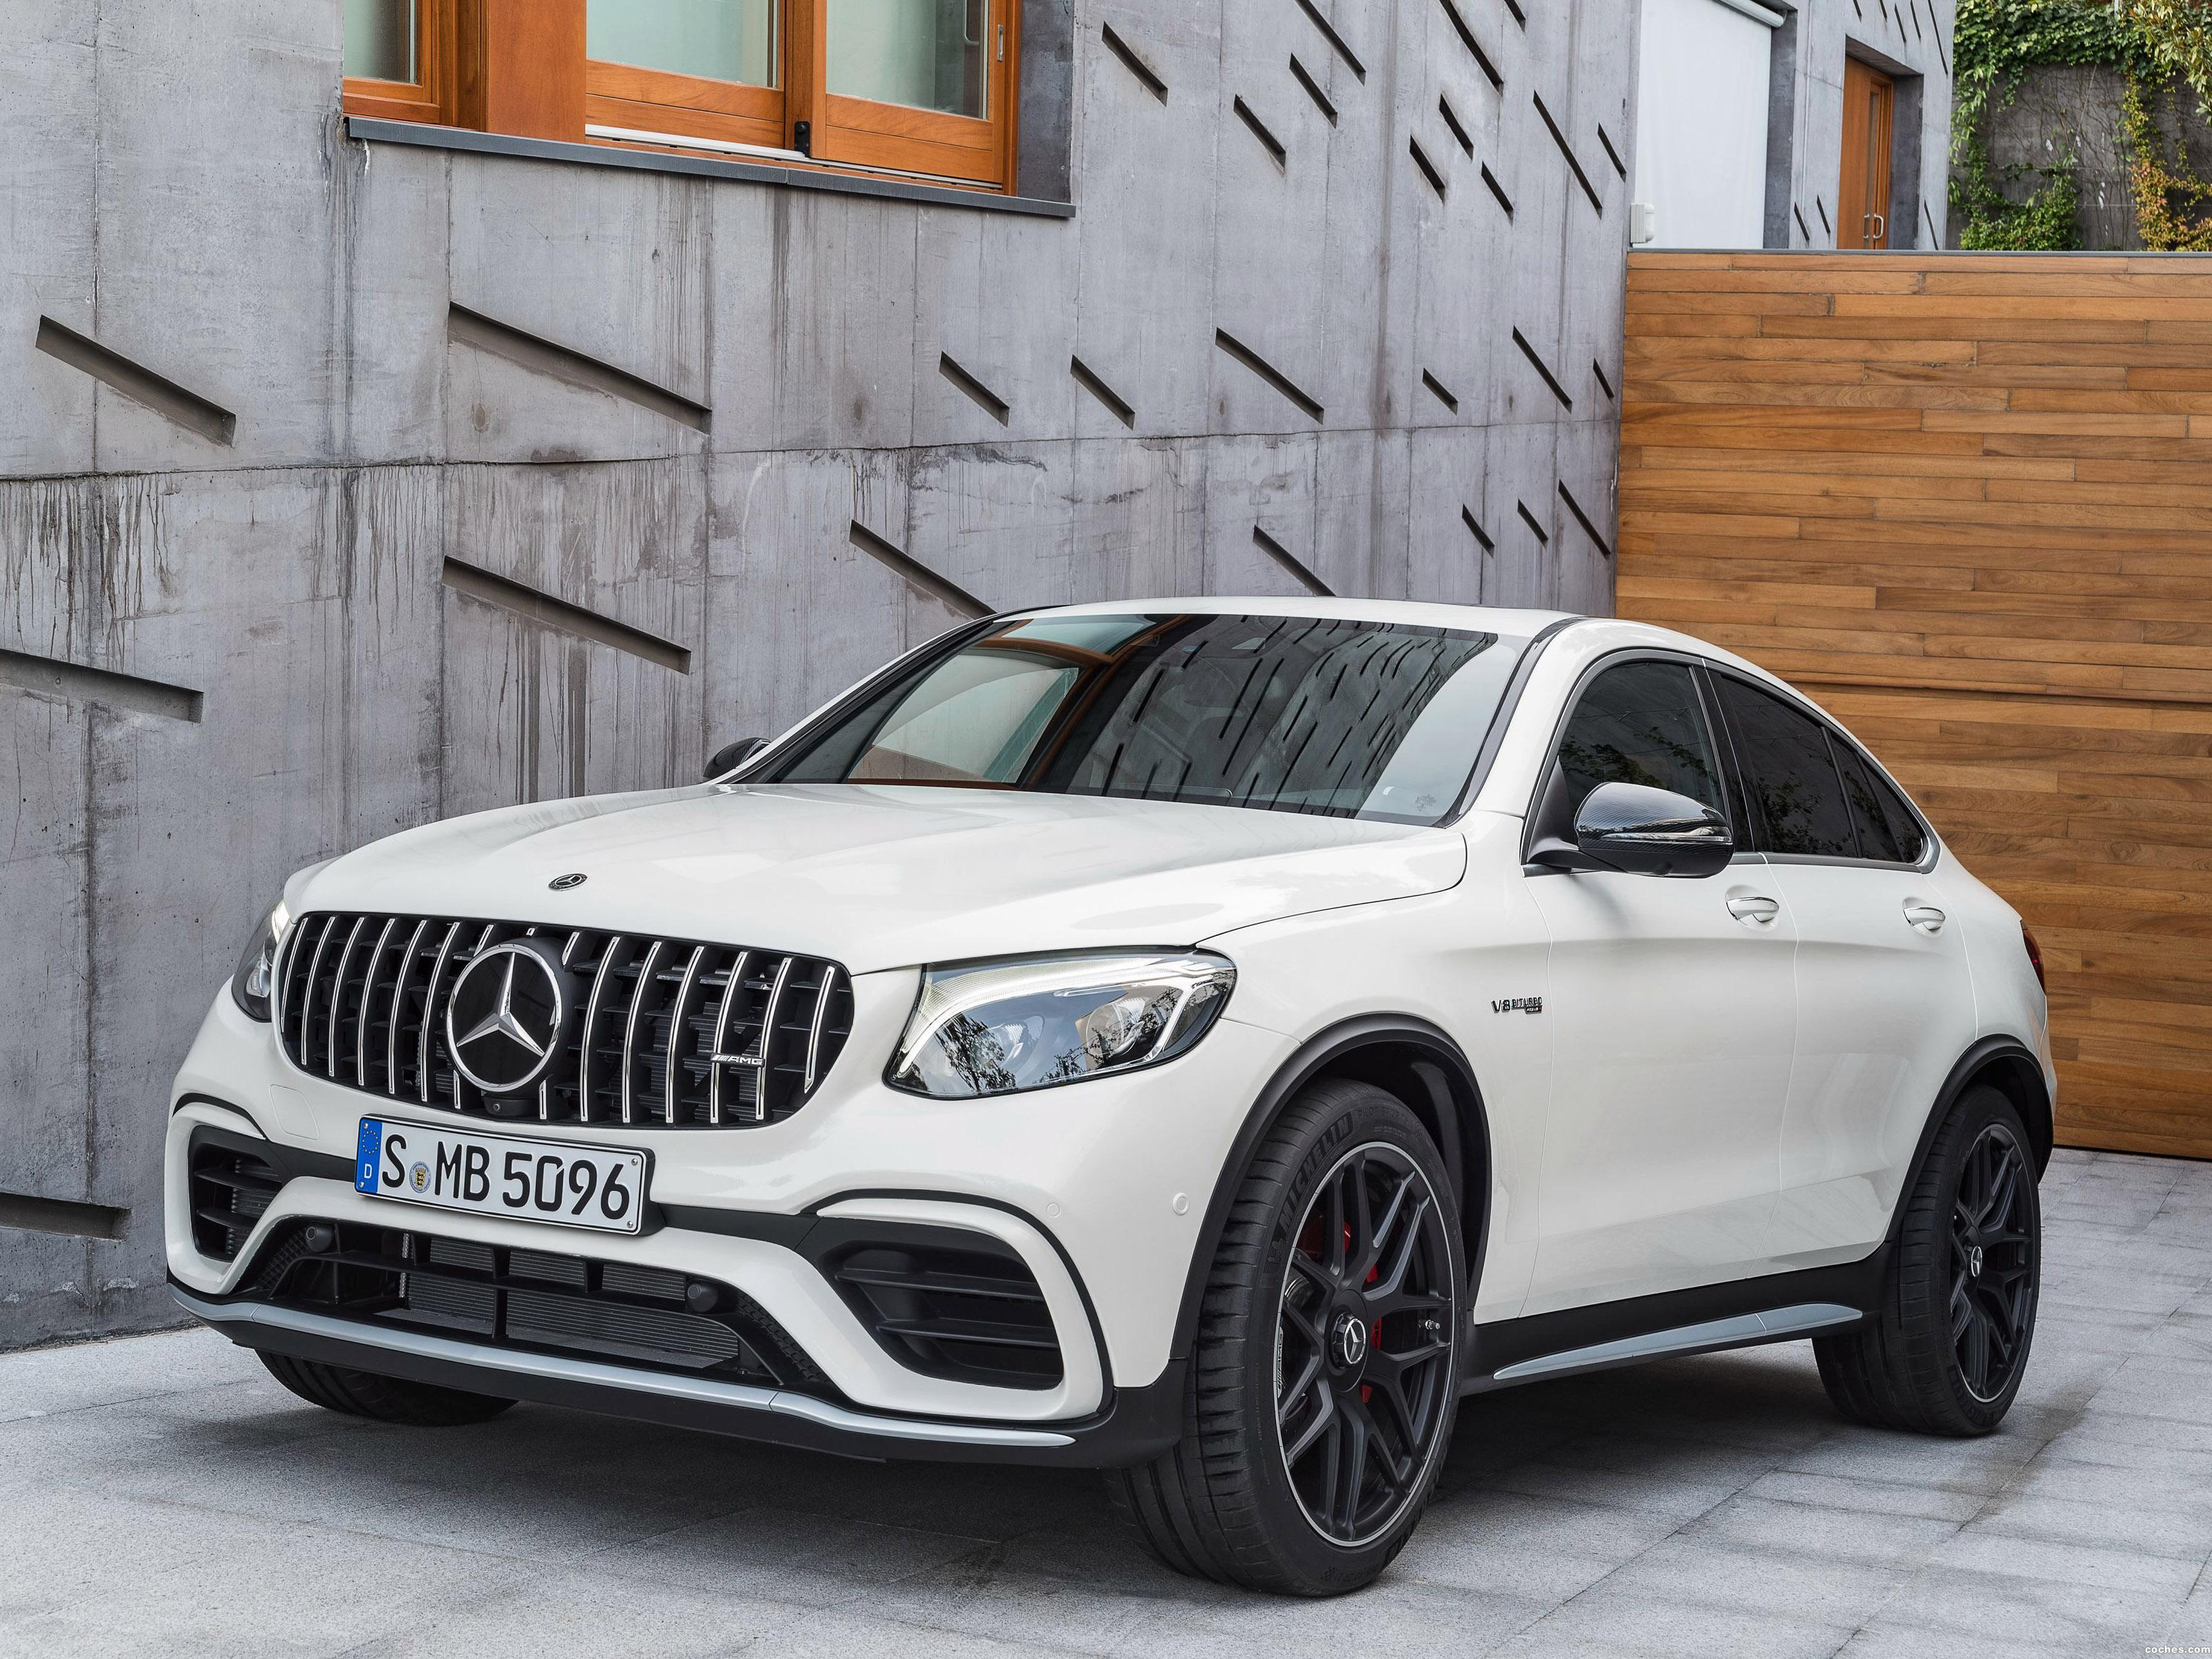 Foto 0 de Mercedes AMG GLC Coupe 63 S 4MATIC C253 2017